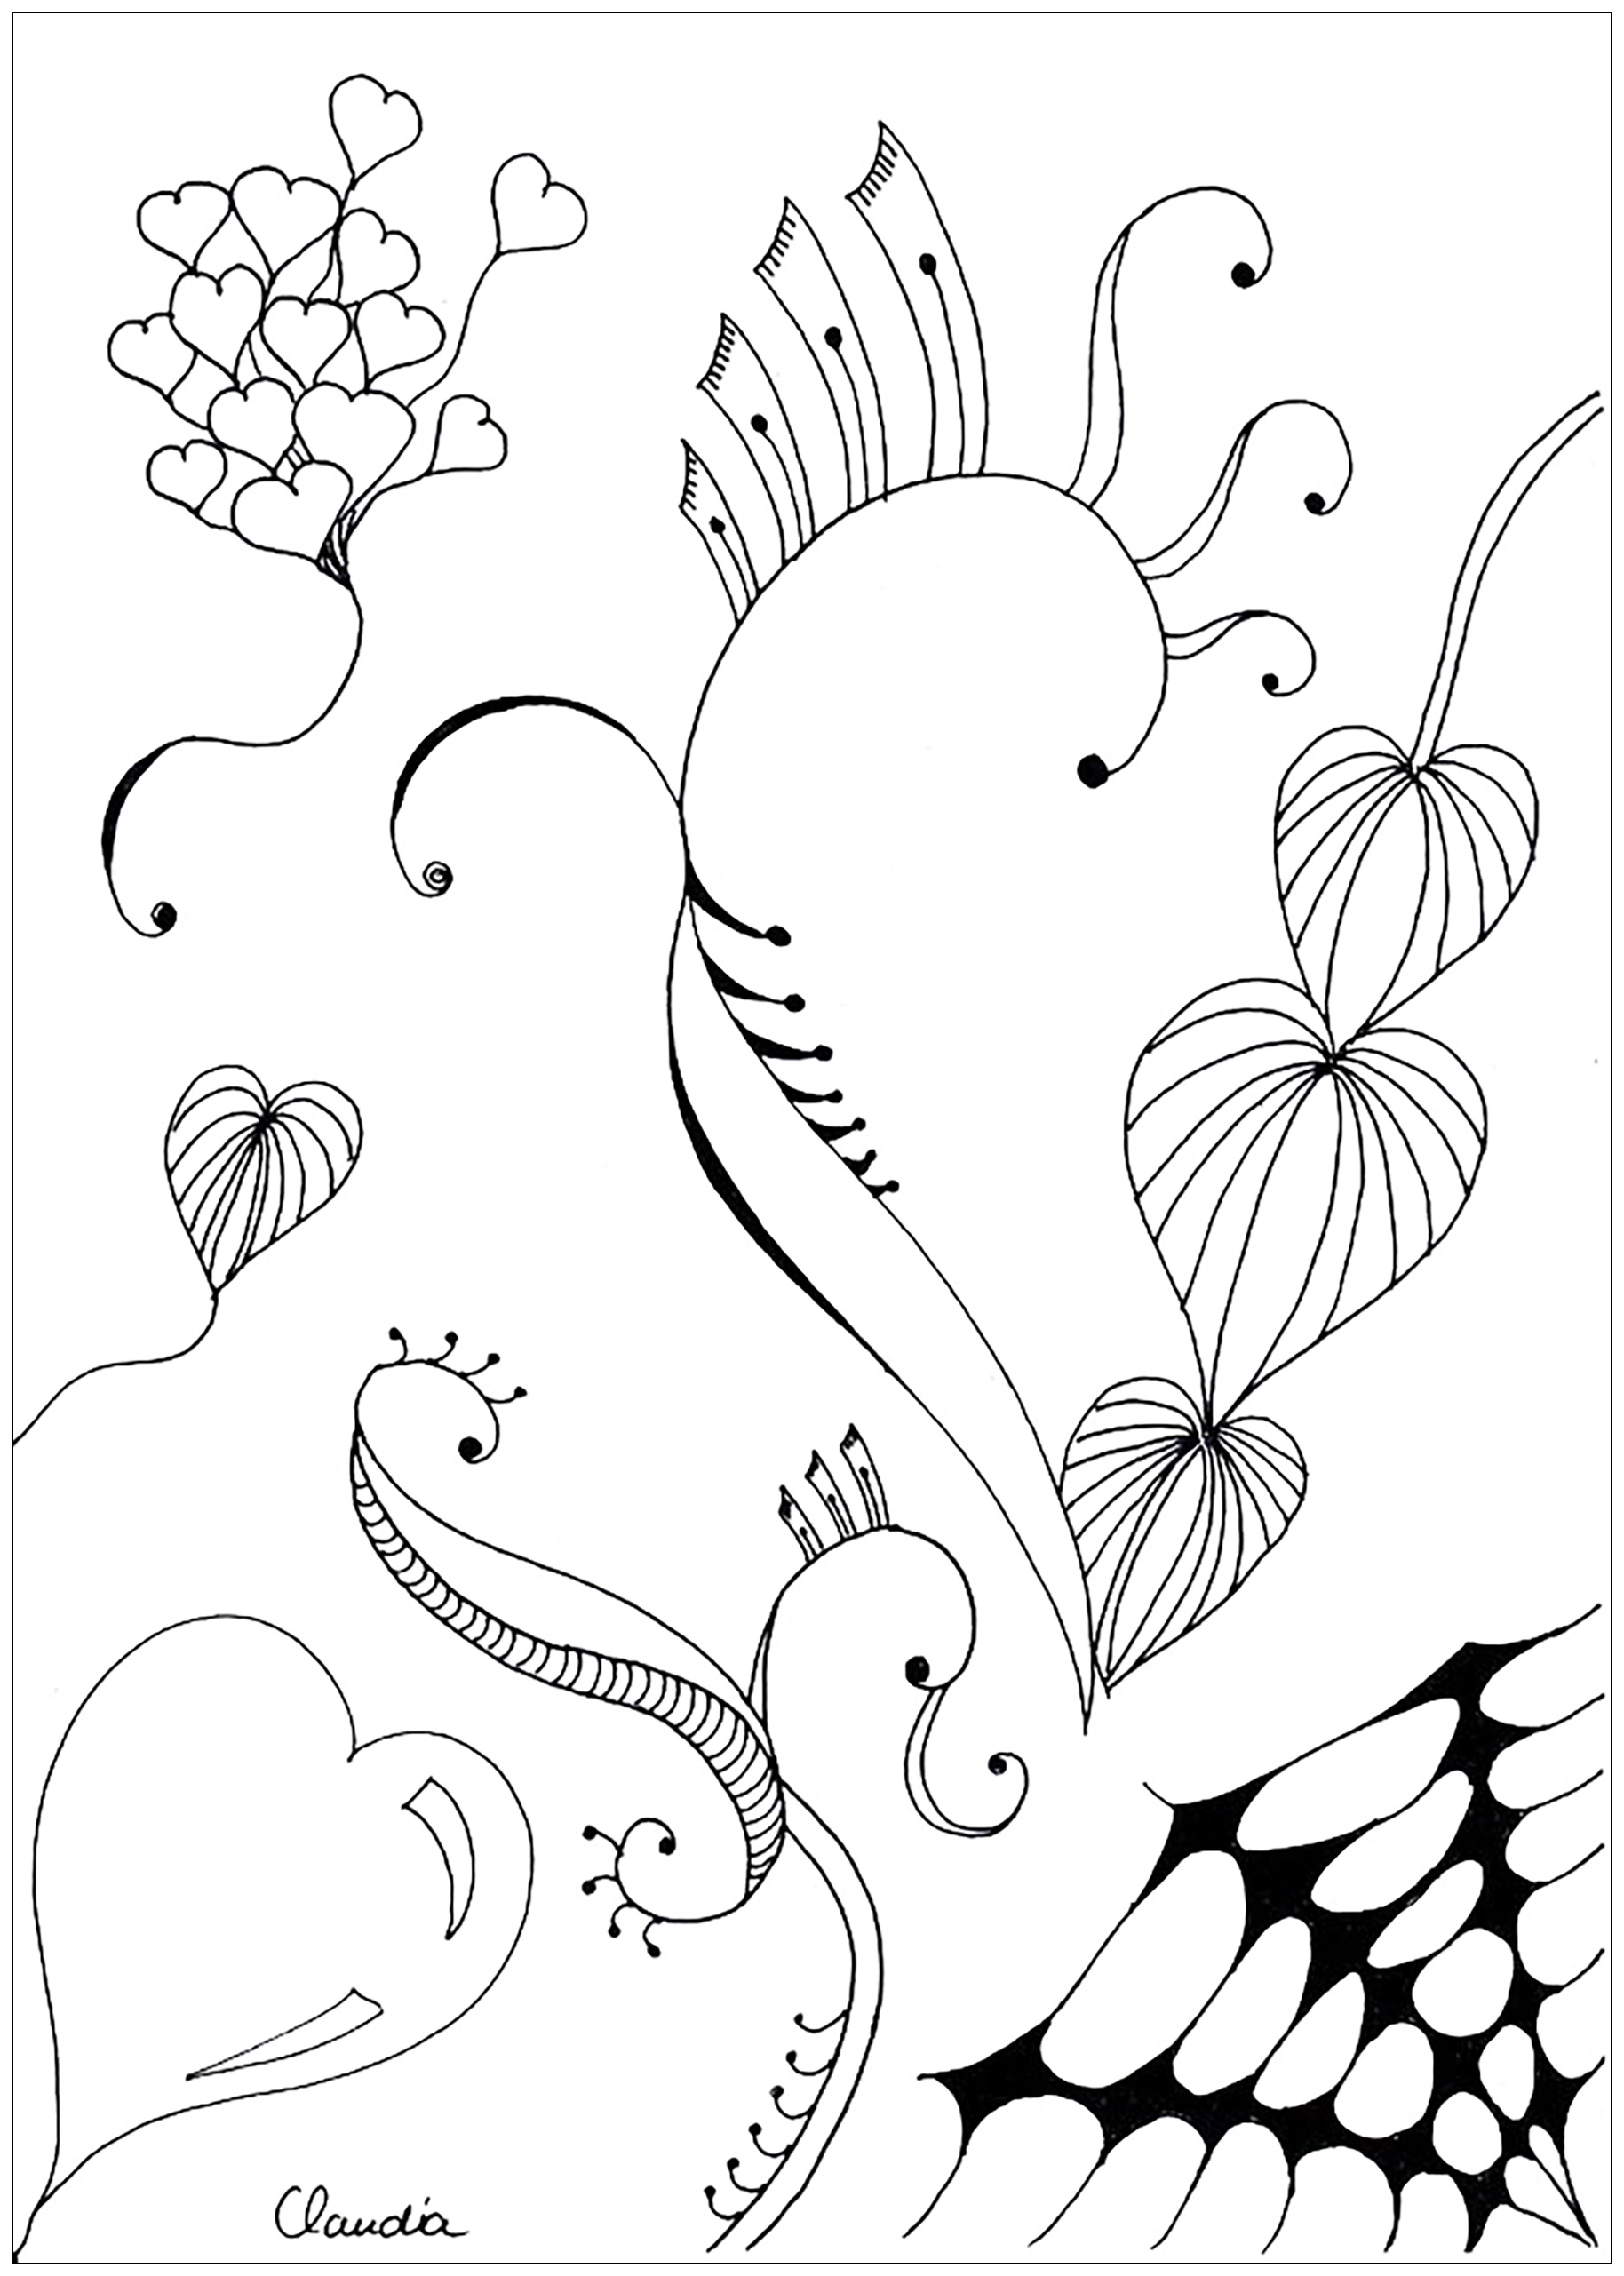 Simple Zentangle drawing to print & color - 3